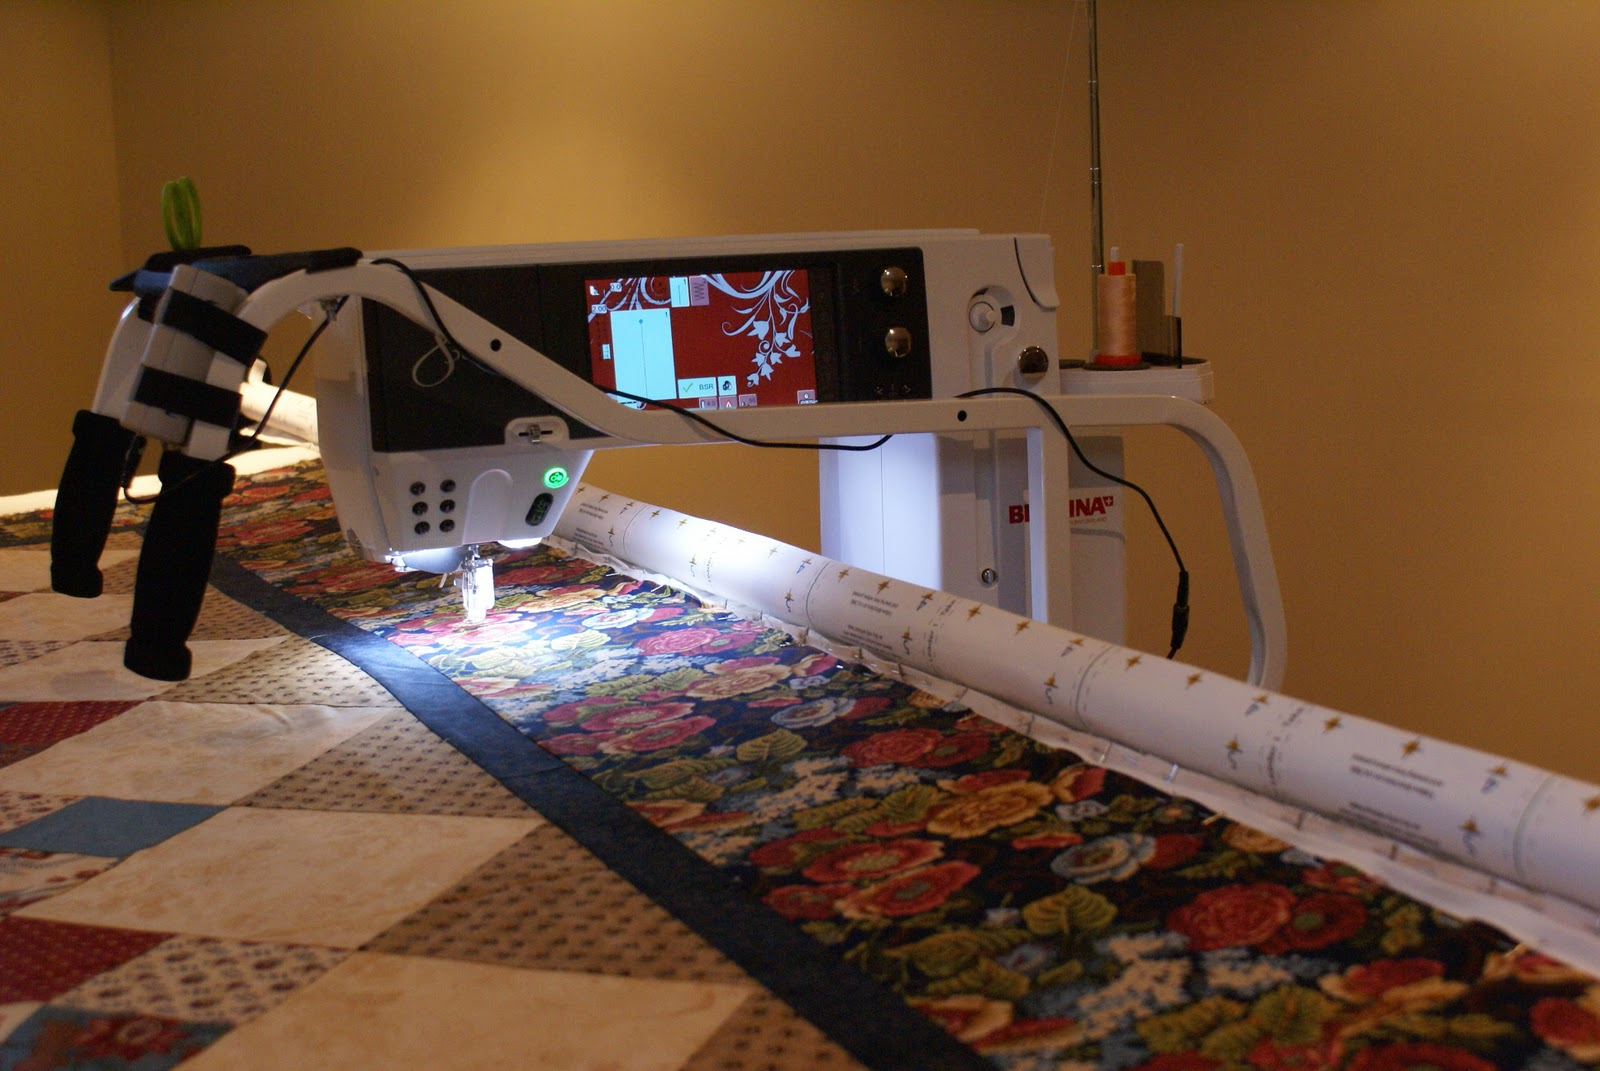 The Saturday Quilter Bernina Quilt Frame